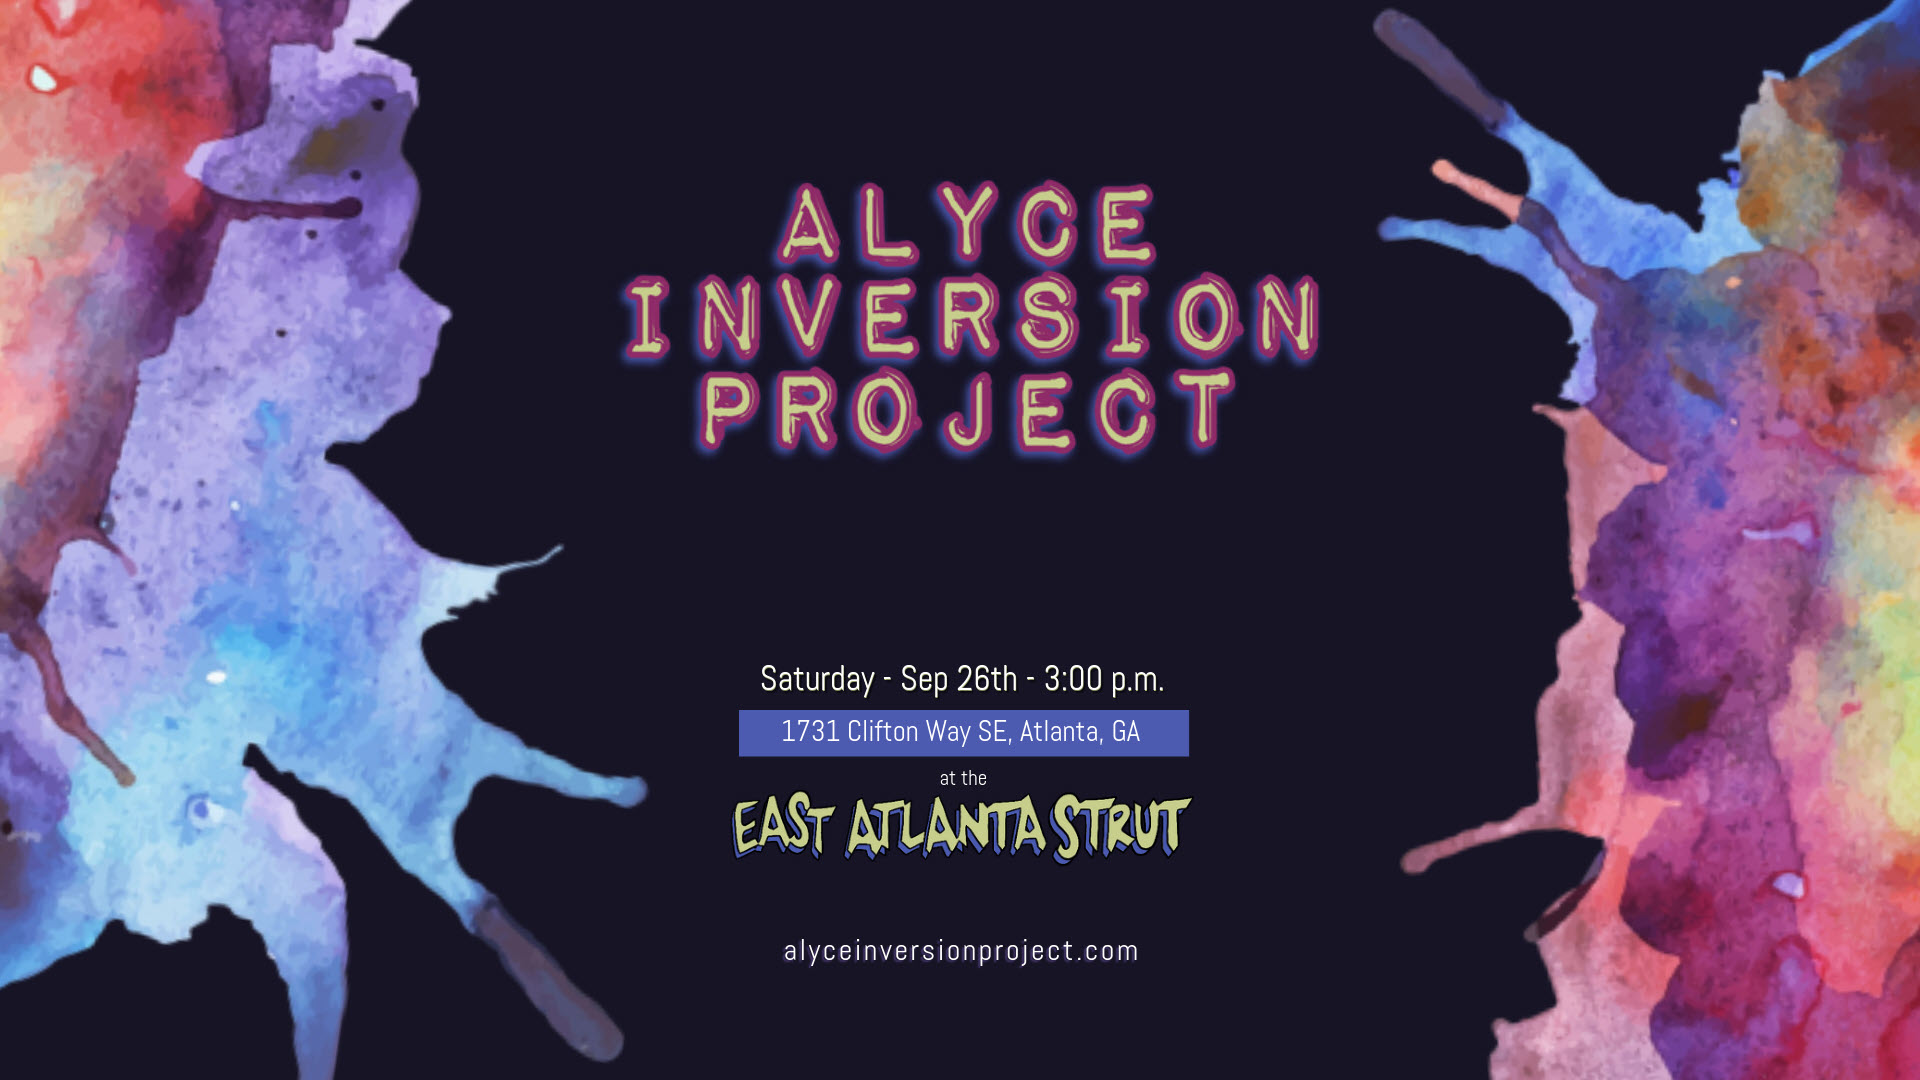 Alyce Inversion Project at the East Atlanta Strut Sep 26 2020